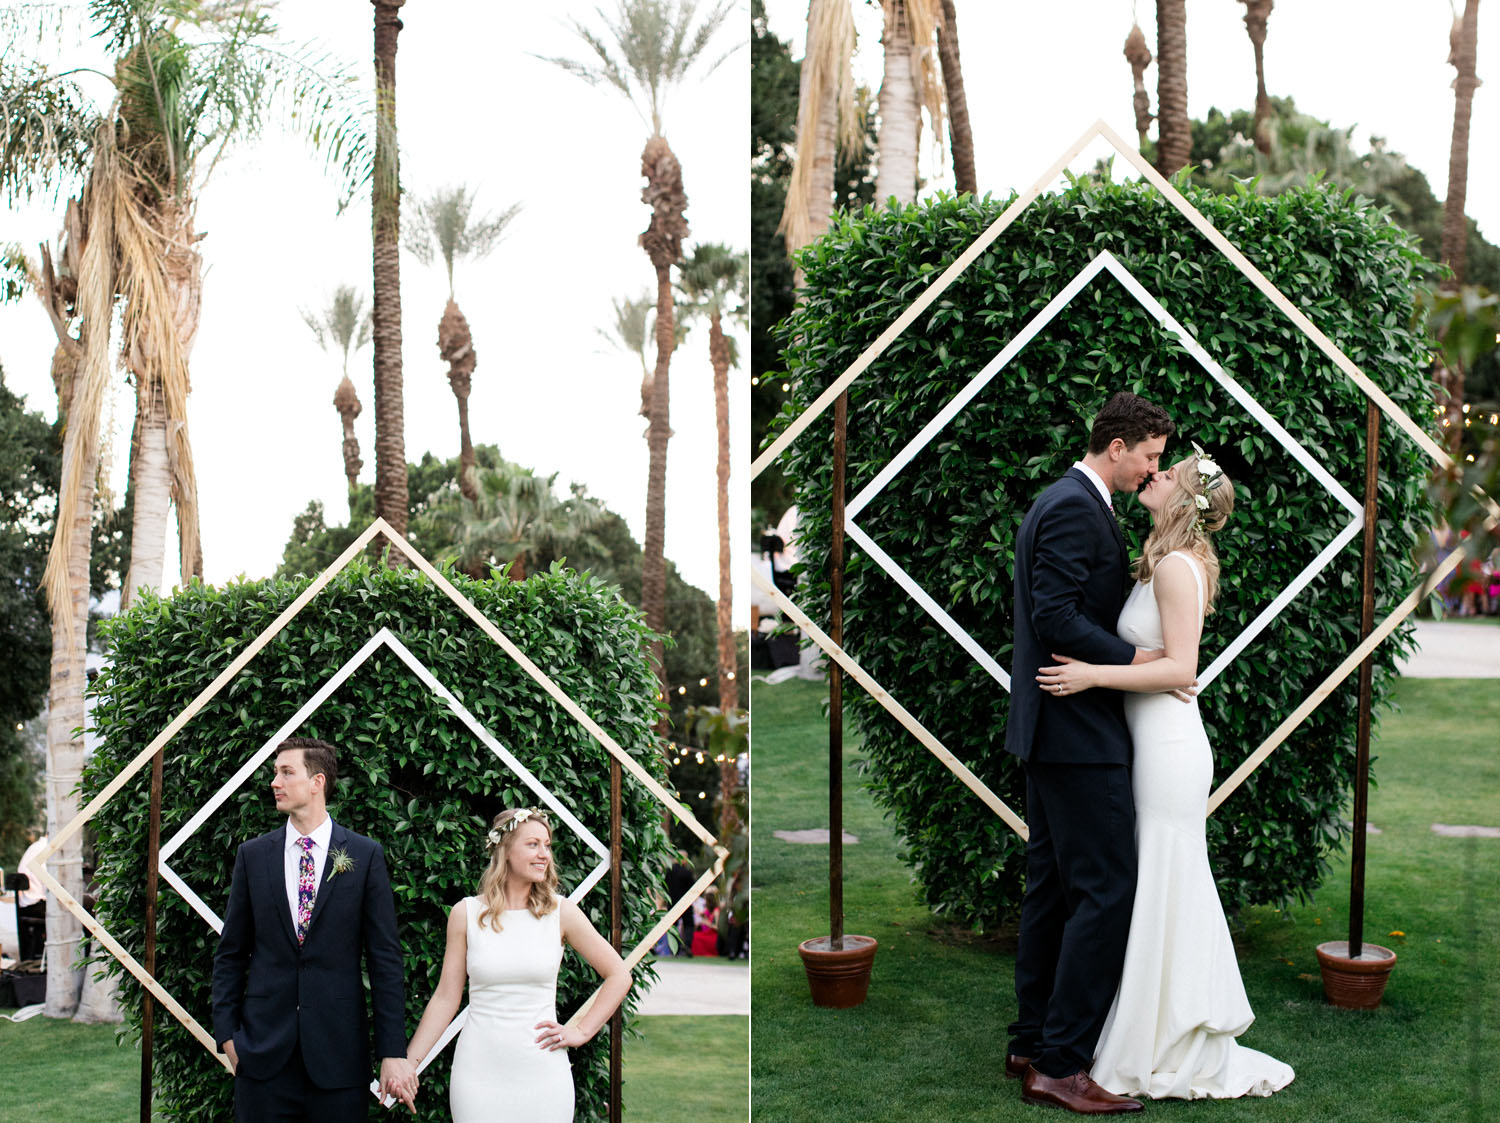 thevondys.com | Cree Estate Palm Springs | Destination Wedding Photographer | The Vondys